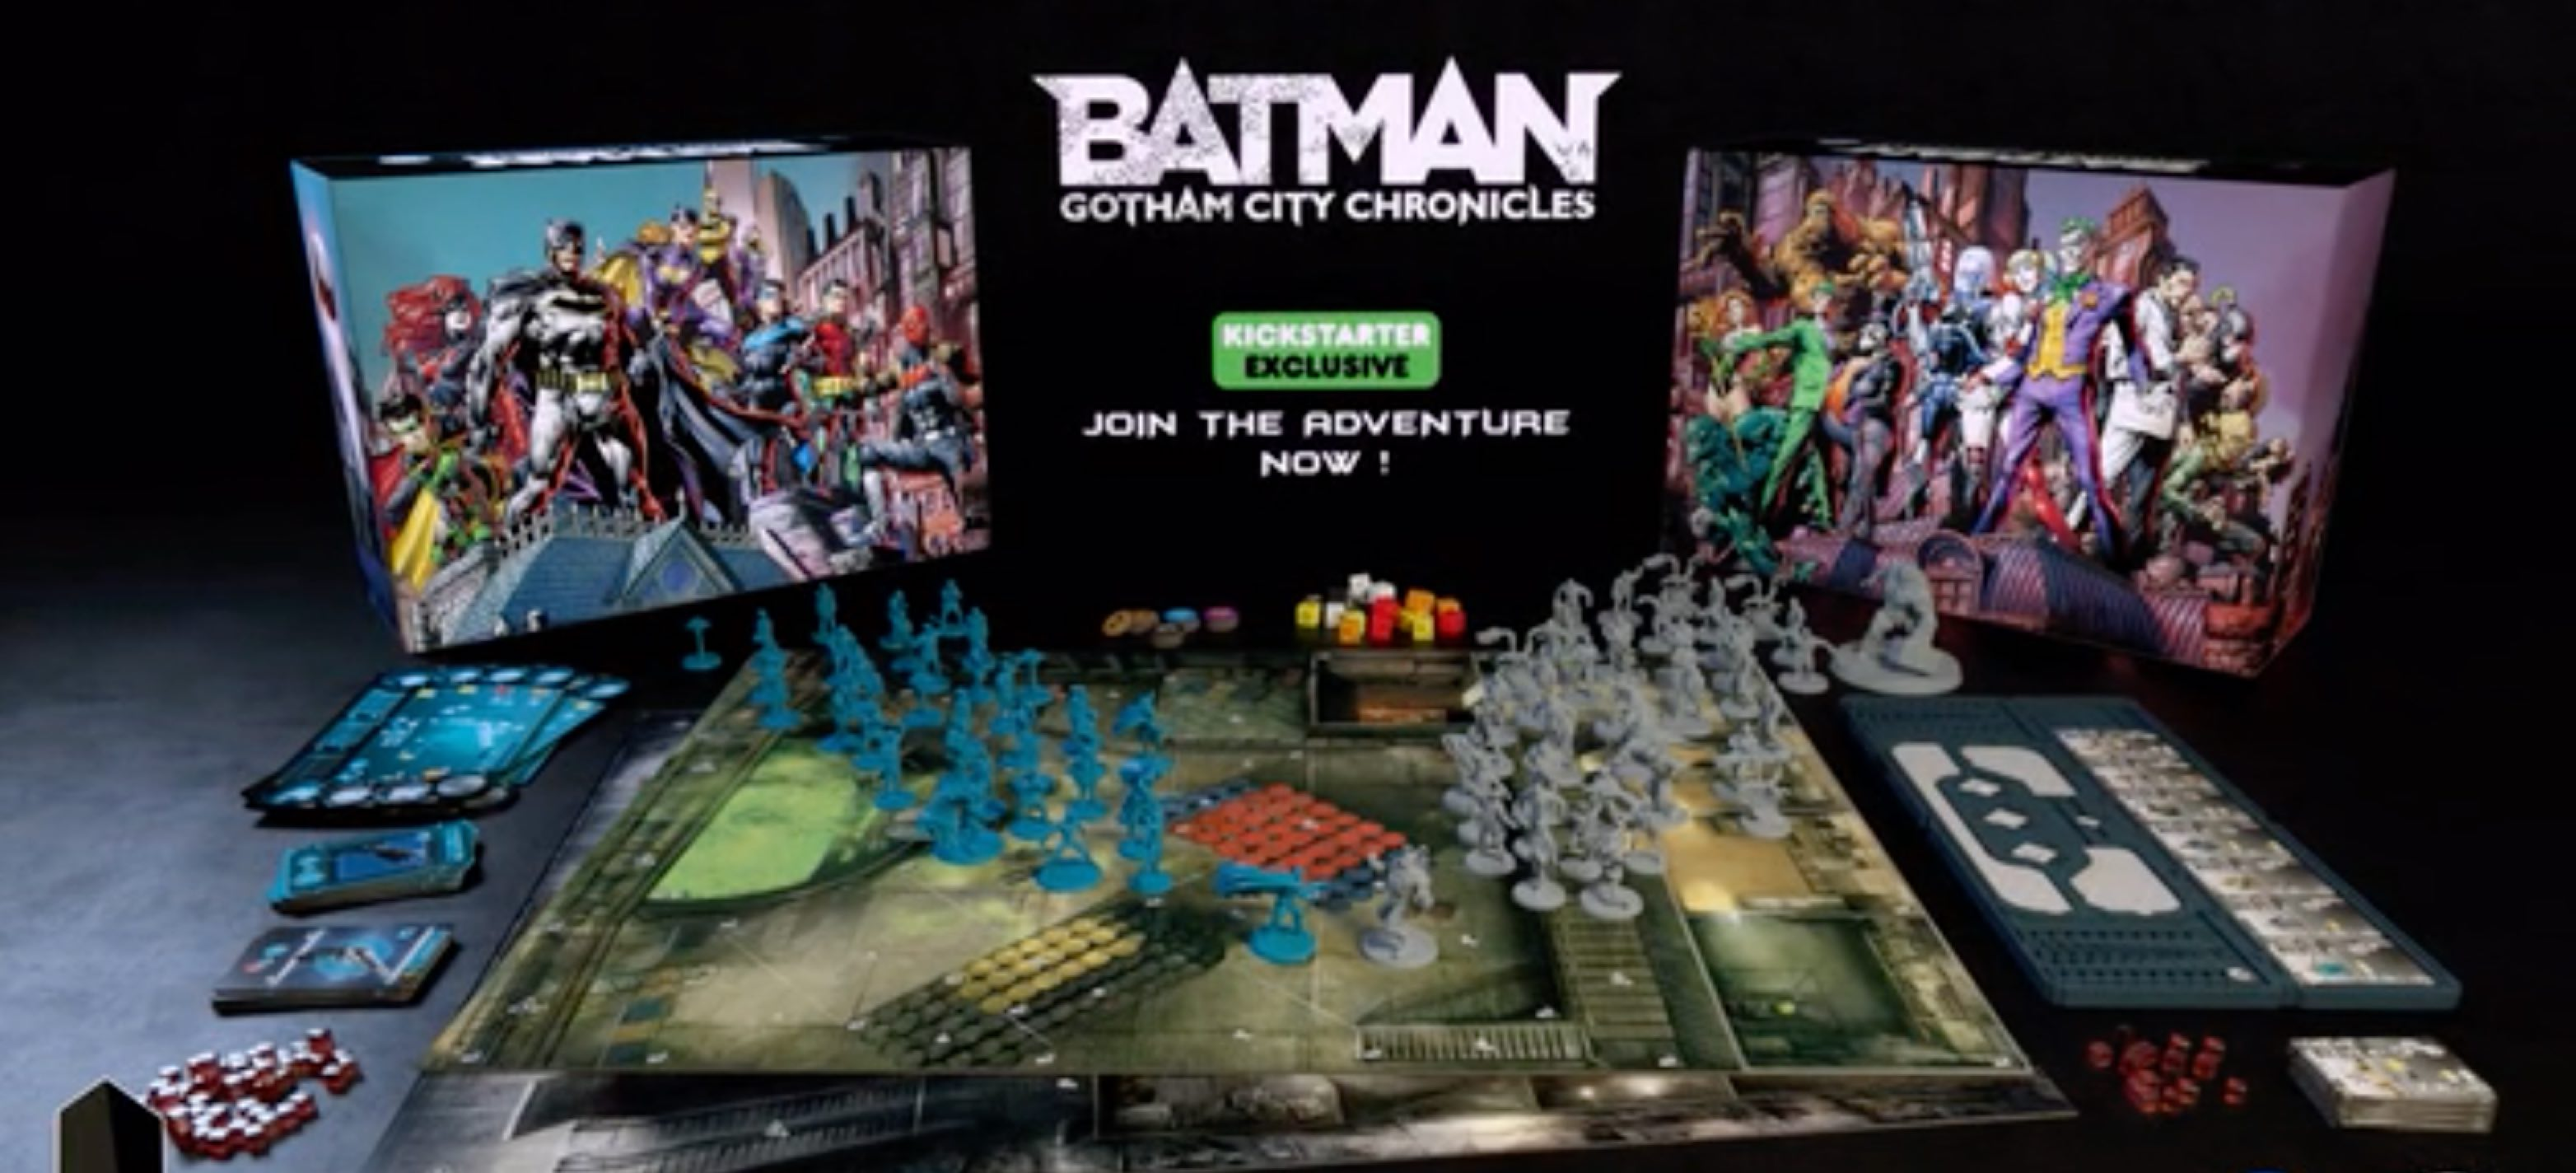 Cool Stuff   Batman  Gotham City Chronicles  Board Game Available     Batman  Gotham City Chronicles